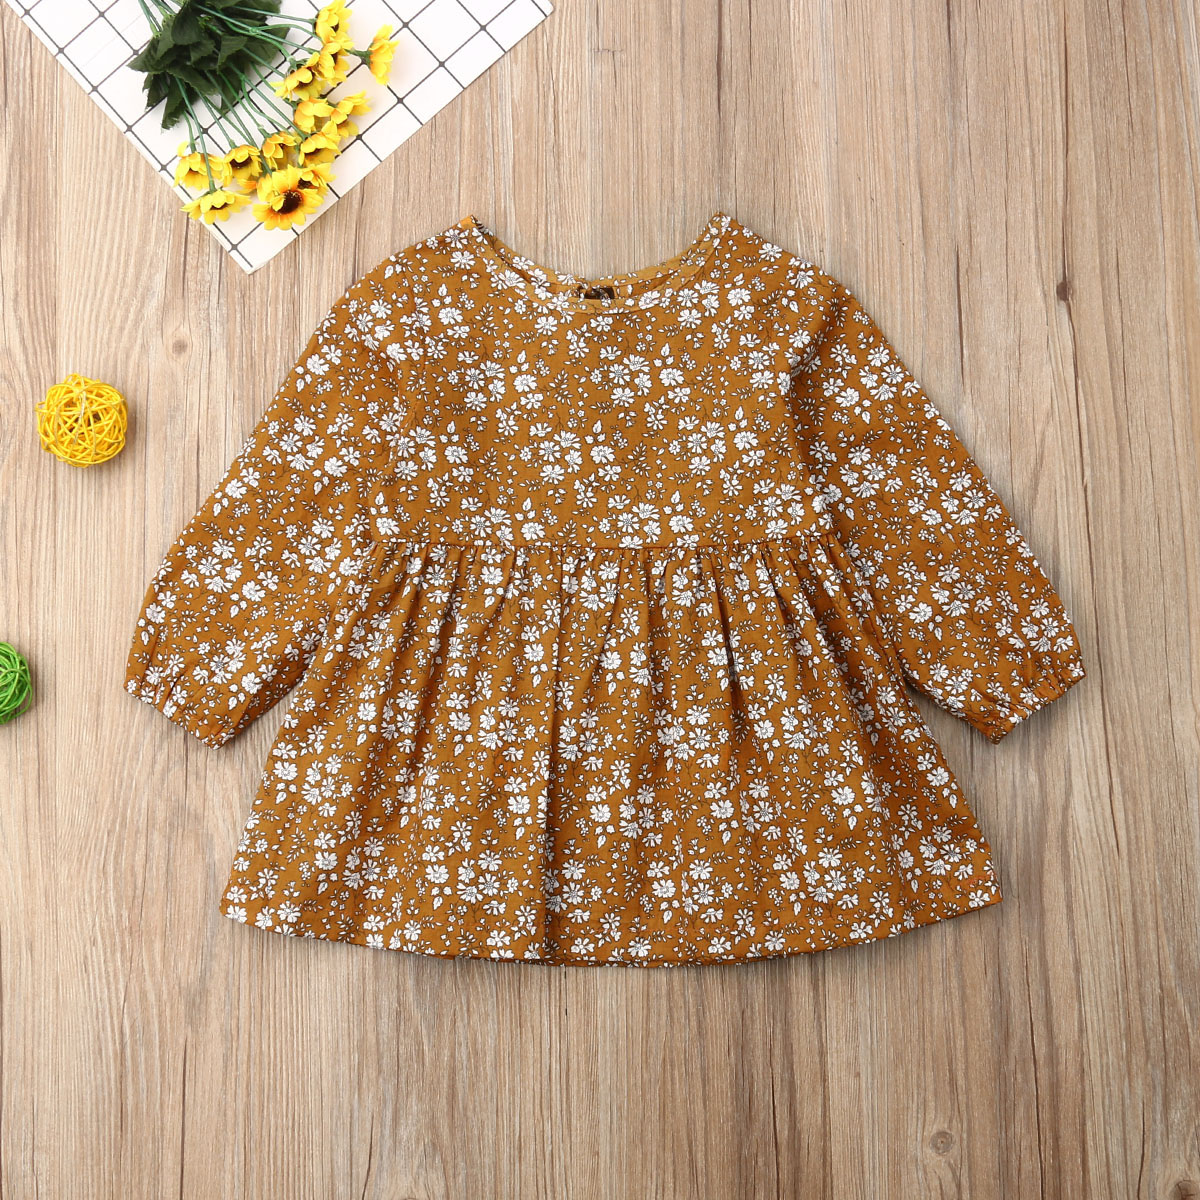 Pudcoco Autumn Toddler Baby Girl Clothes Long Sleeve Flower Print Mini Dress Tutu Casual Dress Autumn Clothes 6M-4Y